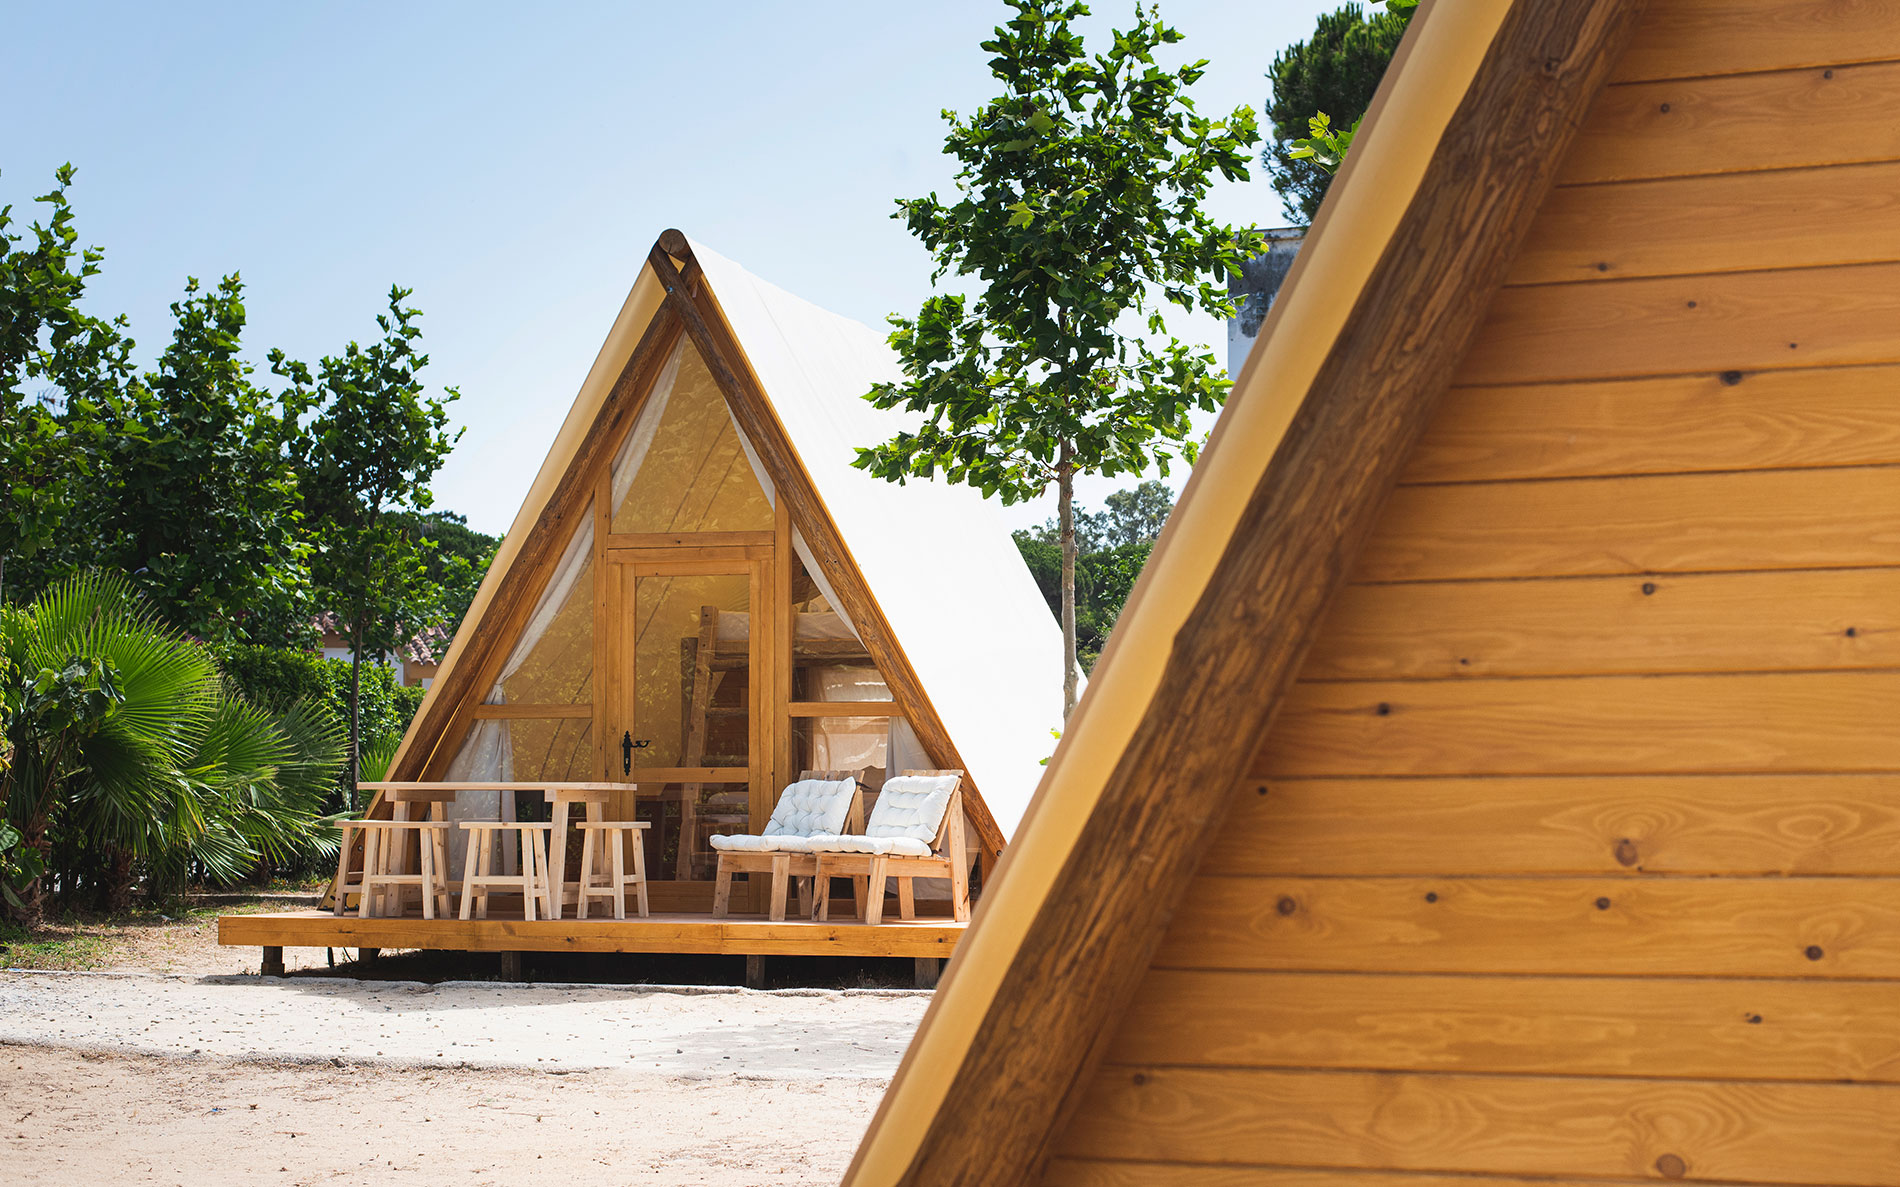 teacampa glamping